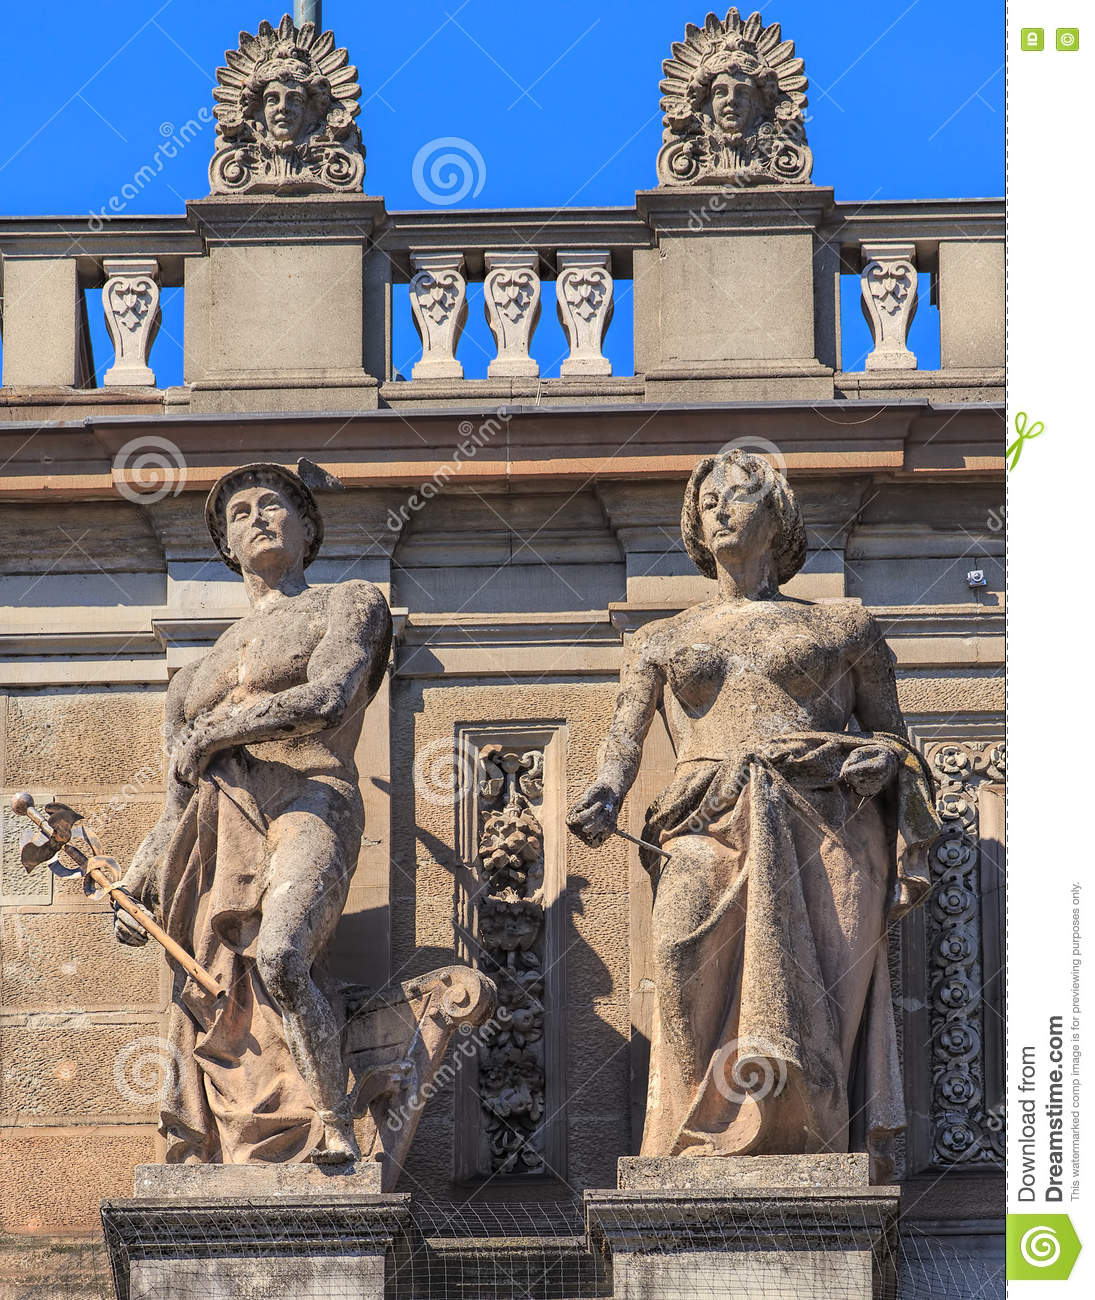 Sculptures On The Facade Of The Zurich Main Train Station Buildi Editorial Image